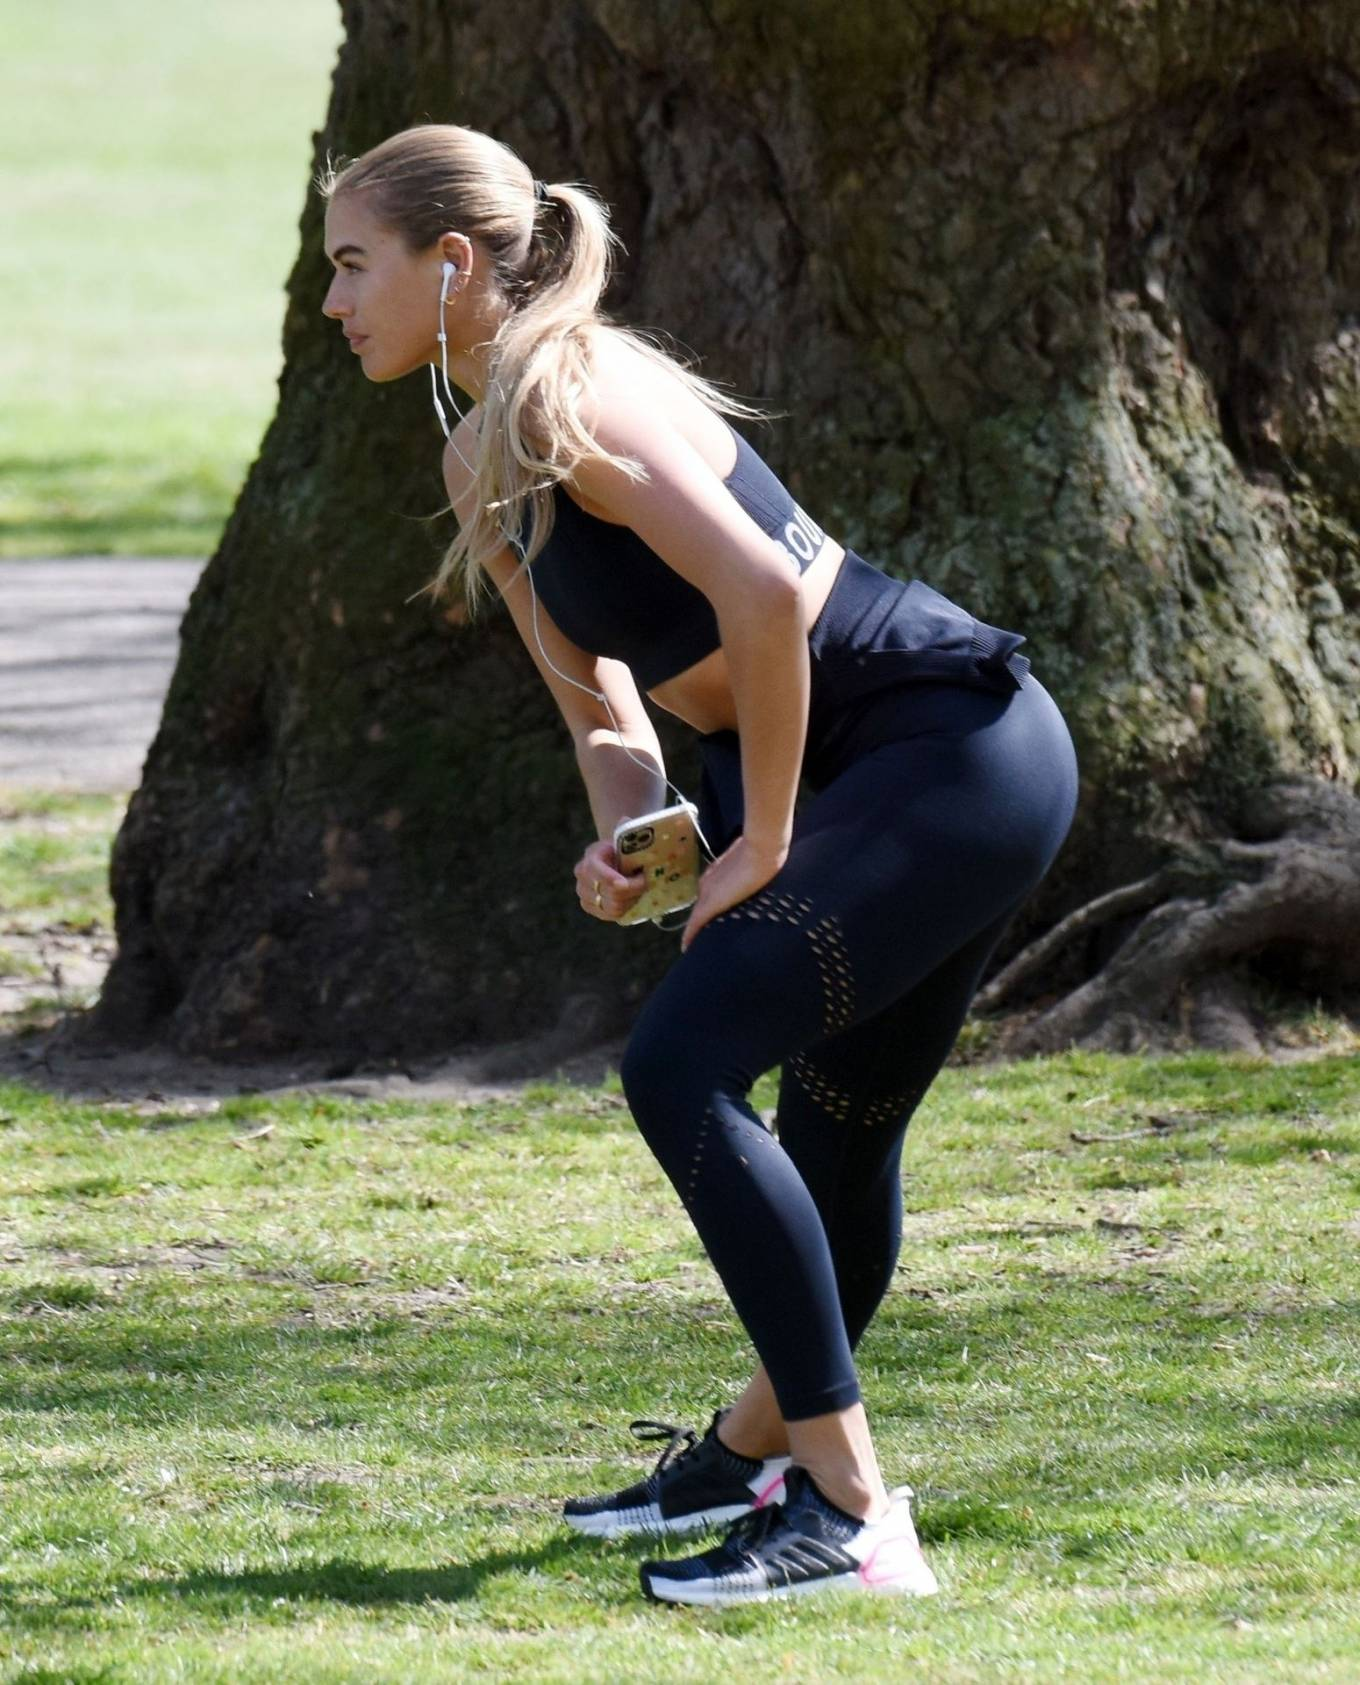 Arabella Chi - Workout candids in the park in London